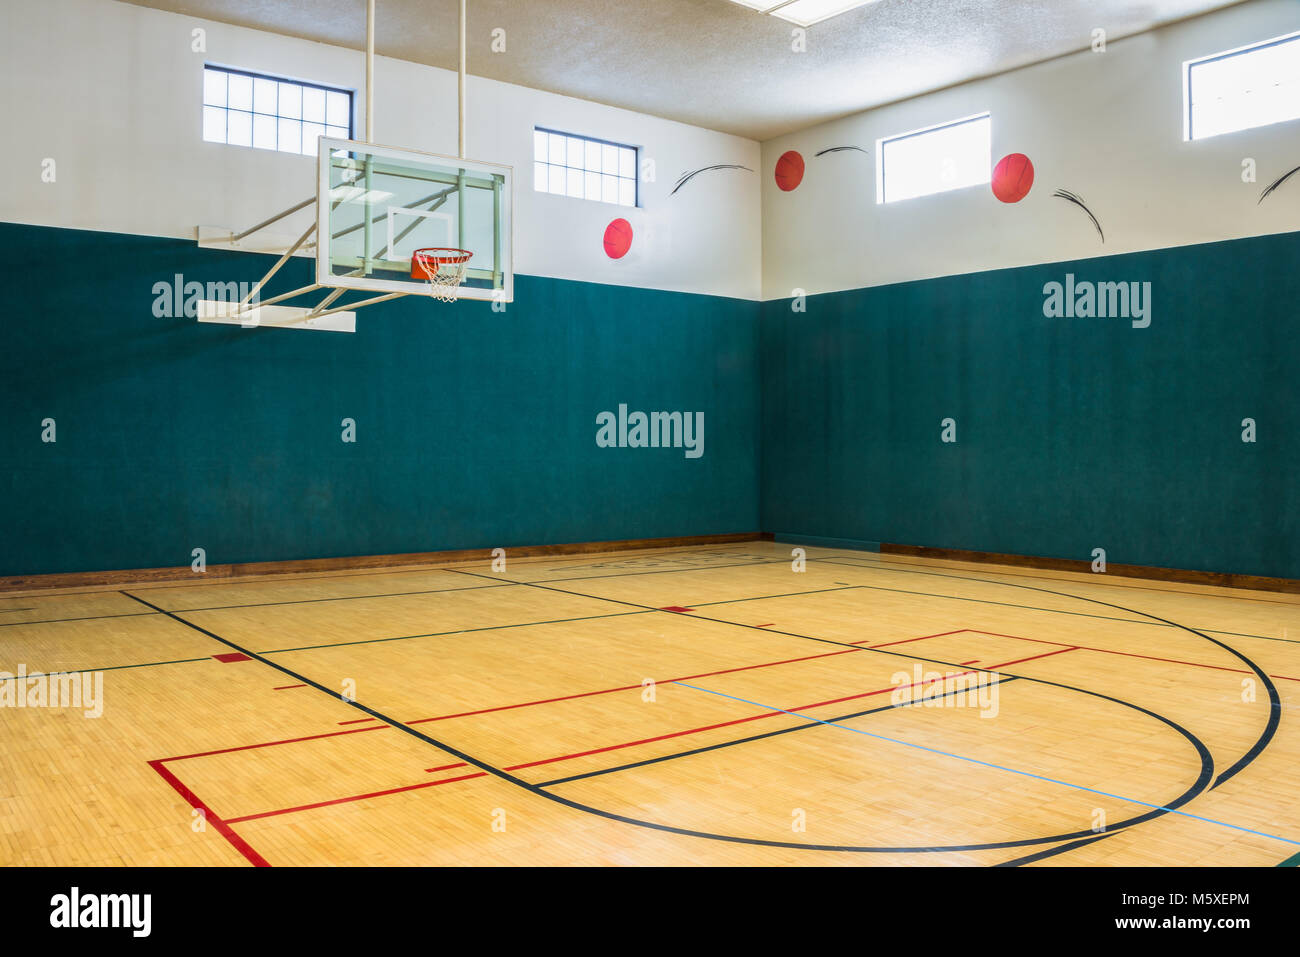 Indoor Basketball Court High Resolution Stock Photography And Images Alamy